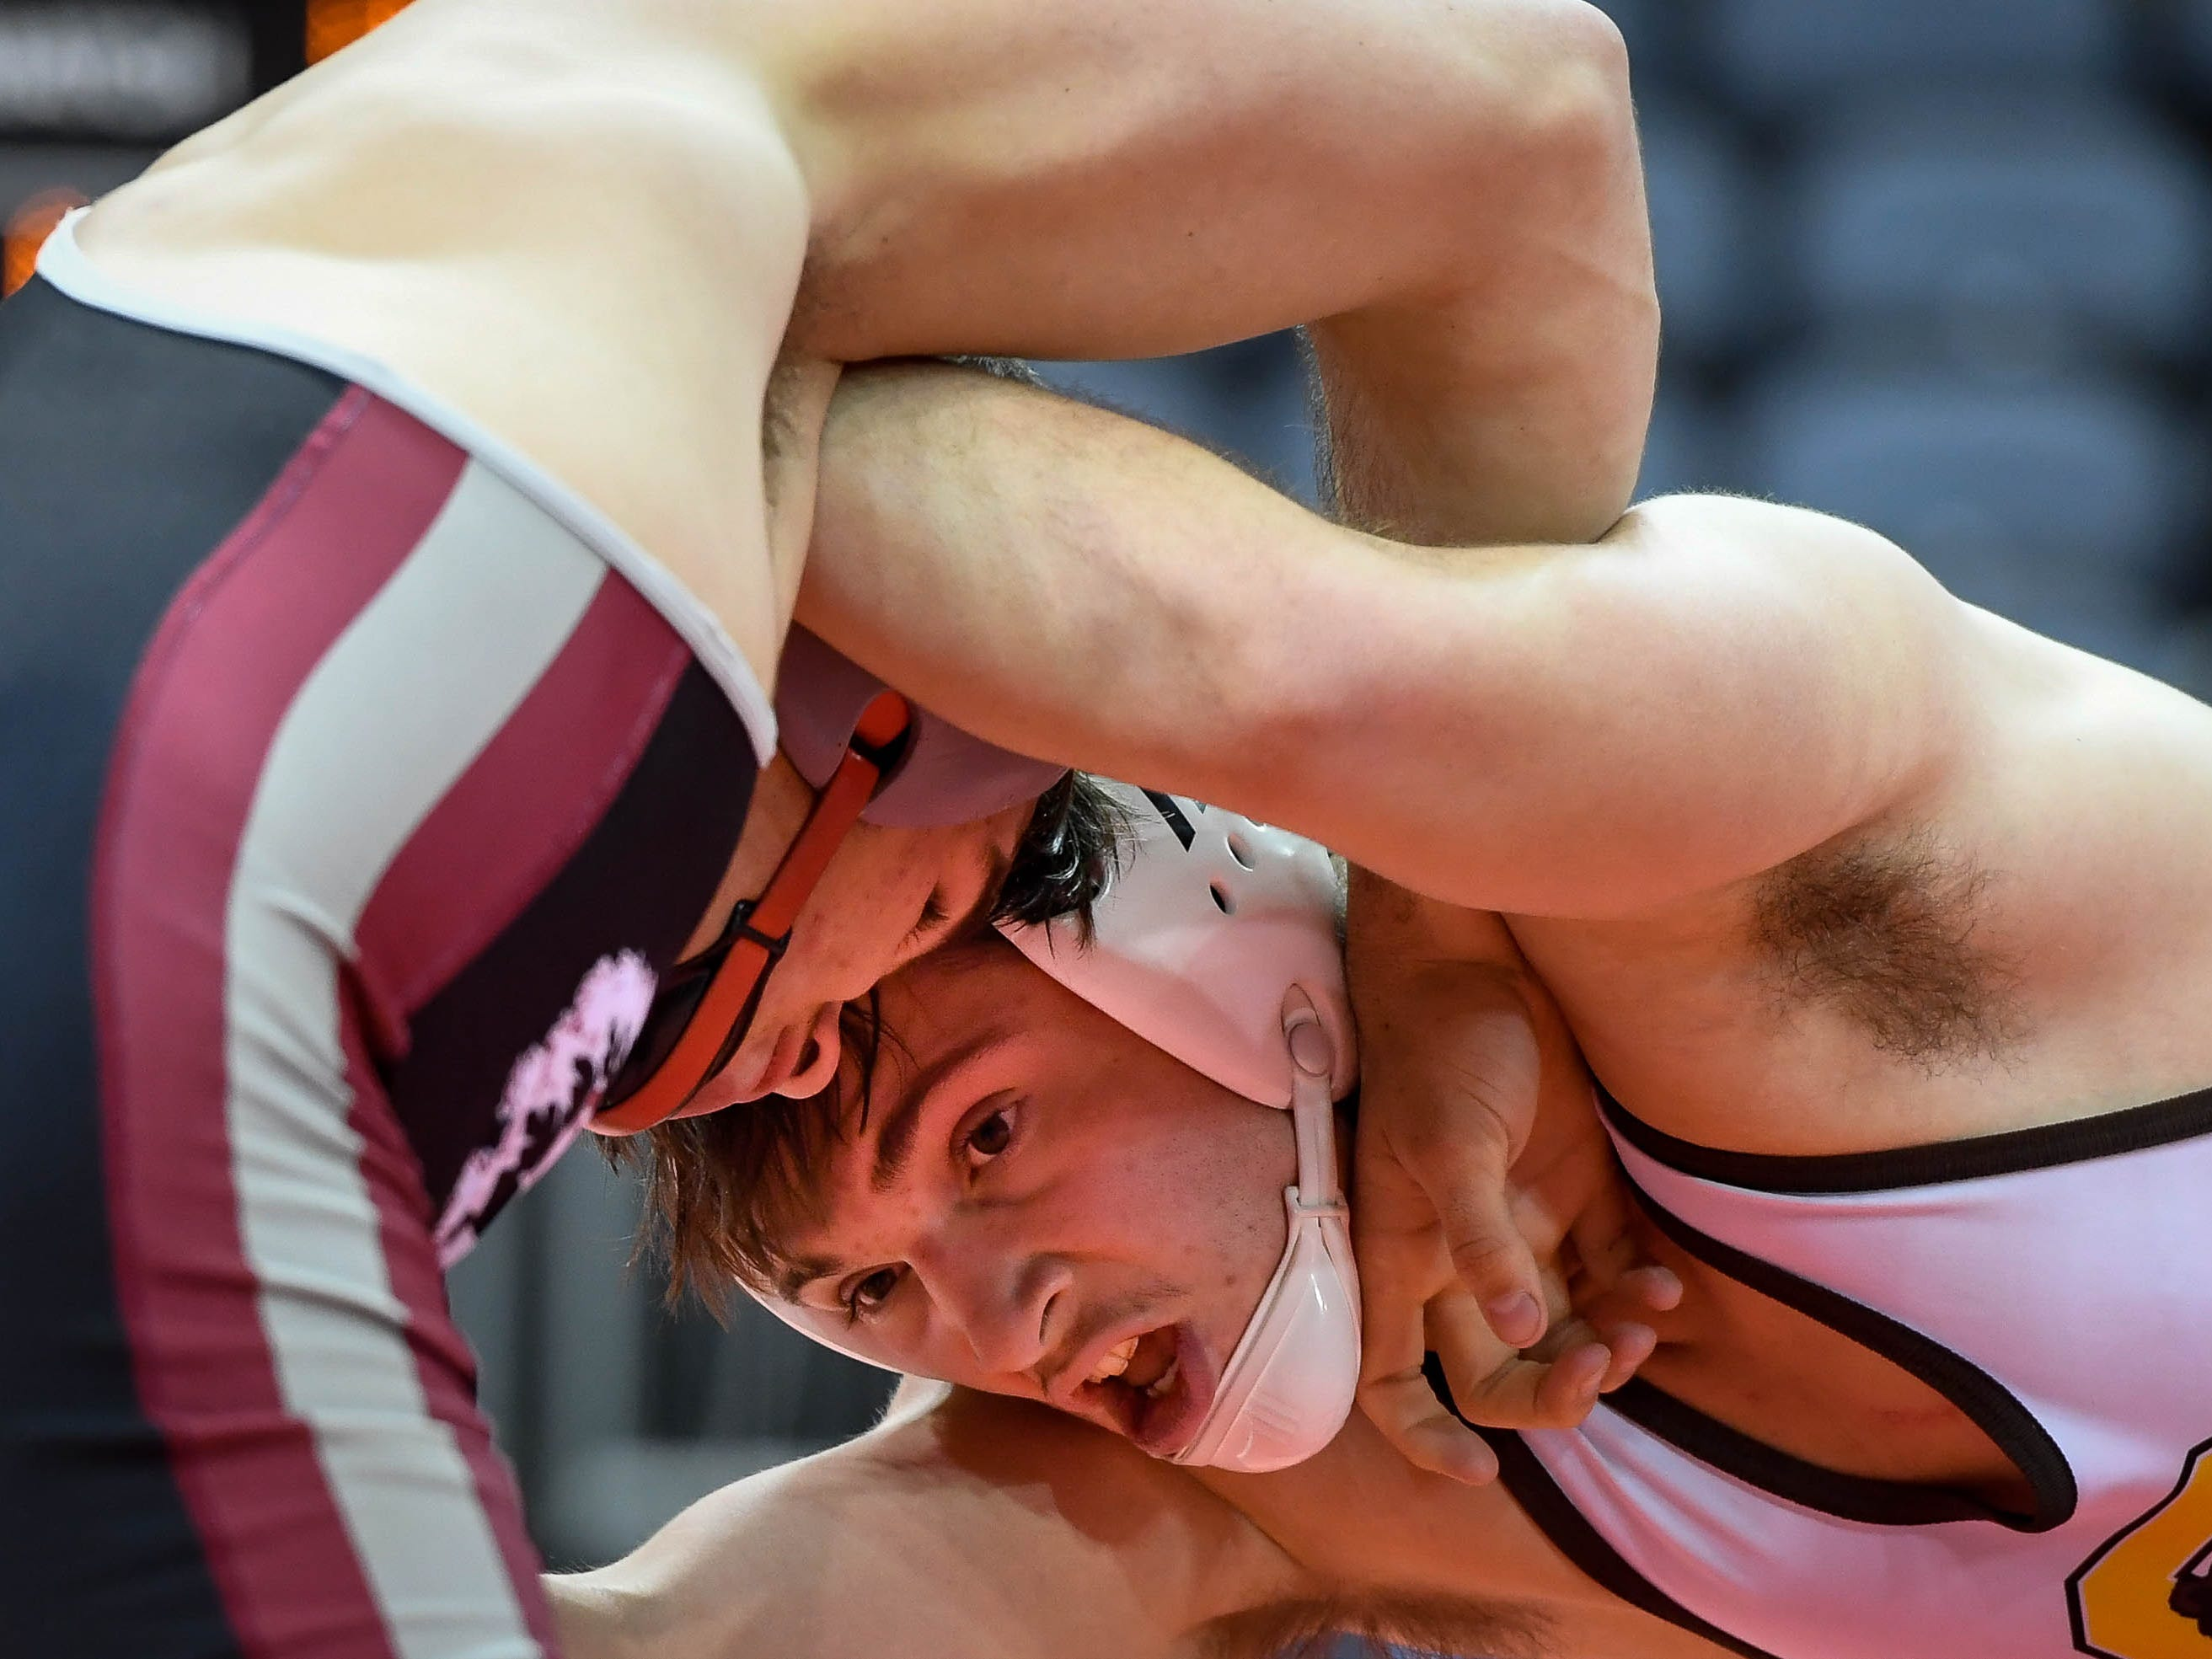 McKinley Kemper, Evansville Central, wrestles Tizton Carson in the 182 weight class, at the Indiana High School Athletic Association Semi-State Wrestling Tournament held at the Ford Center Saturday, February 9, 2019.